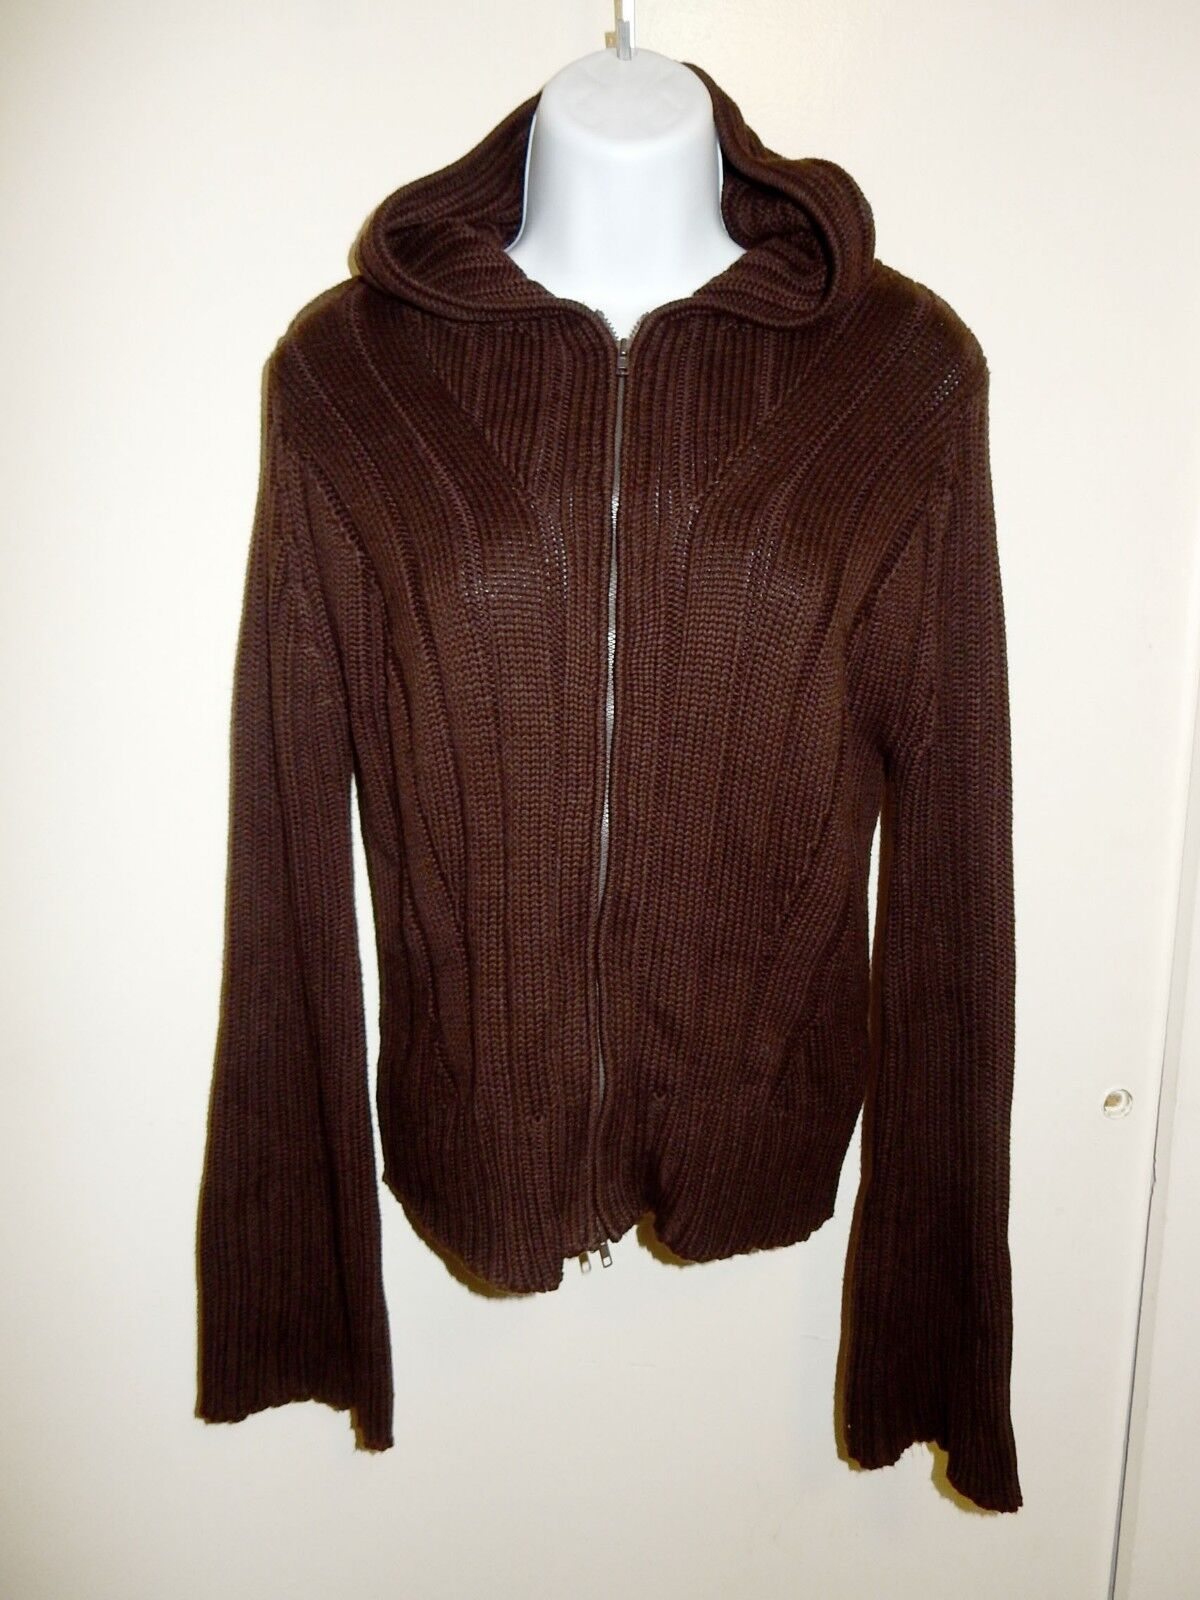 5.525 COTTON BLEND CHOCOLATE BROWN ZIPPED HOODED RIBBED KNIT CARDIGAN SWEATER M